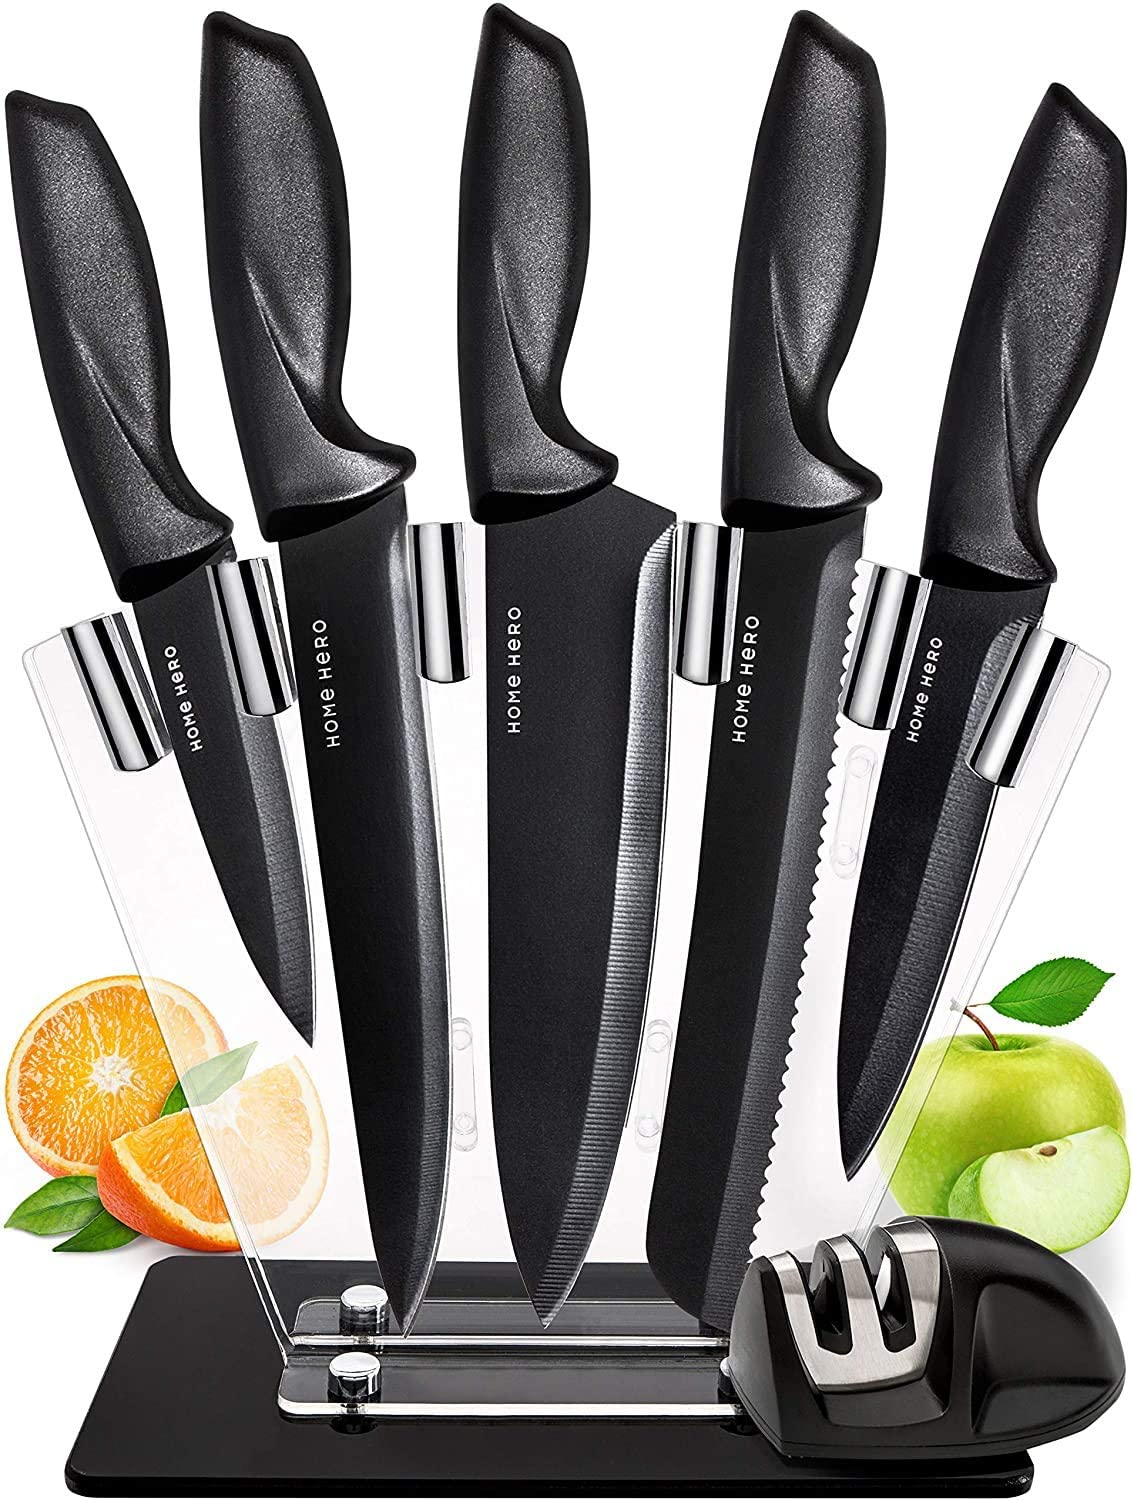 Amazon Com Chef Knife Set Knives Kitchen Set Stainless Steel Kitchen Knives Set Kitchen Knife Set With Stand Plus Professional Knife Sharpener 7 Piece Stainless Steel Cutlery Knives Set By